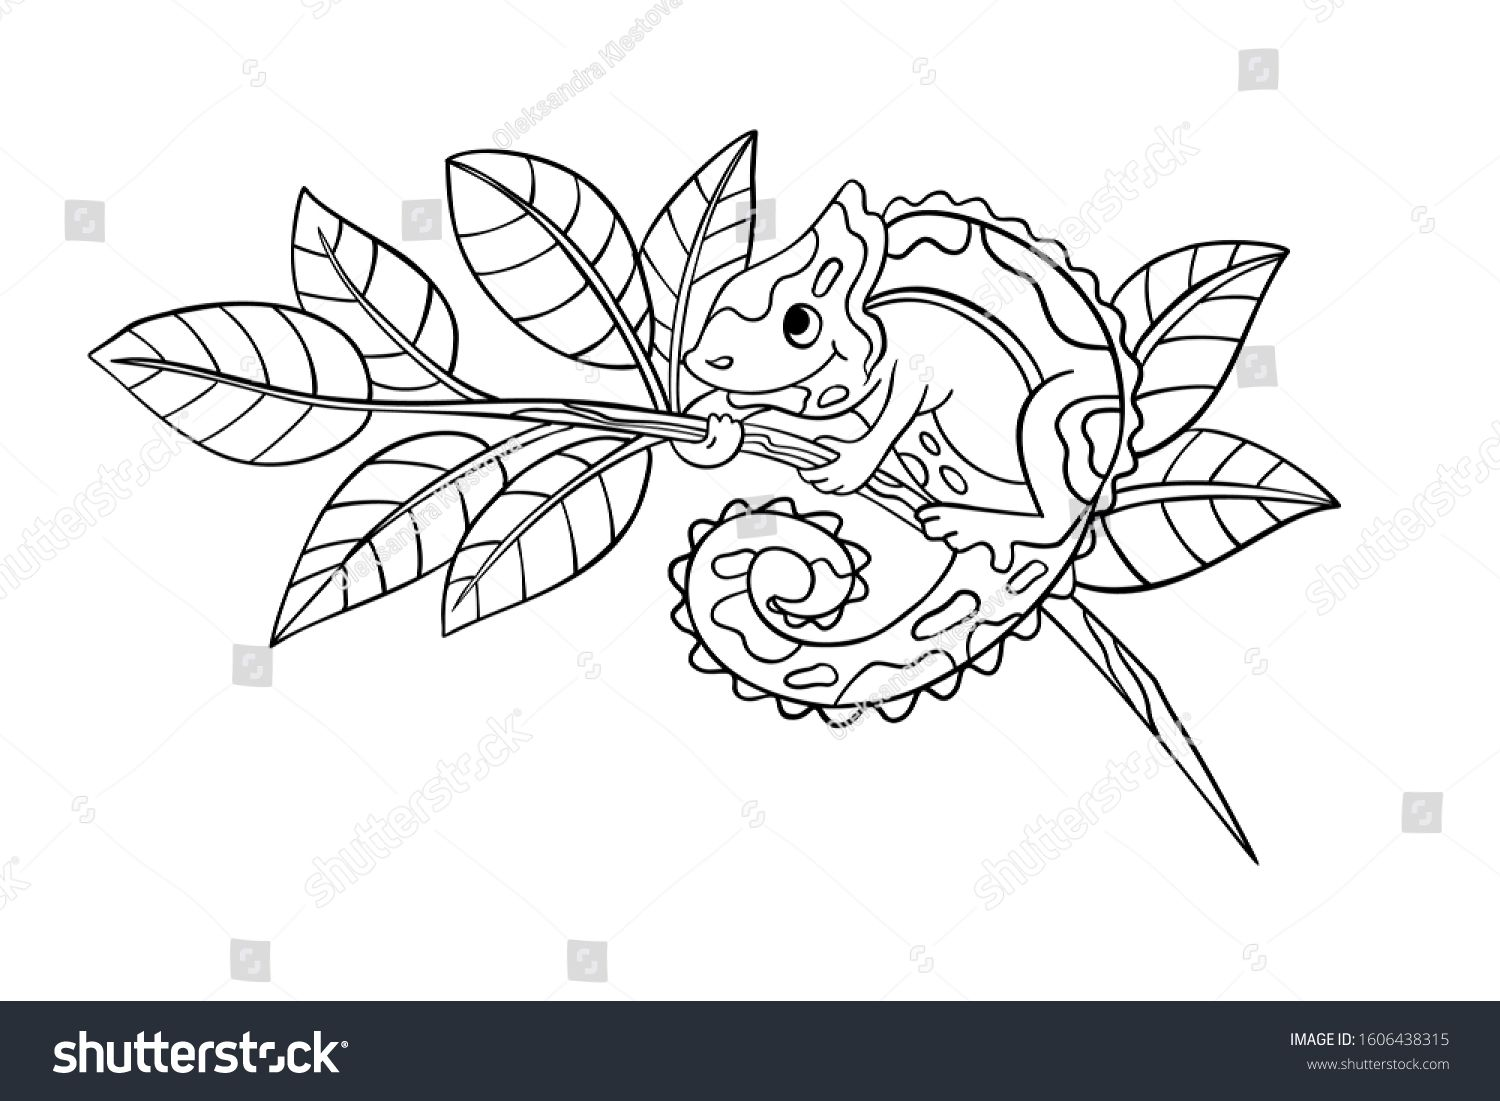 Vector coloring page with cute chameleon sitting on a